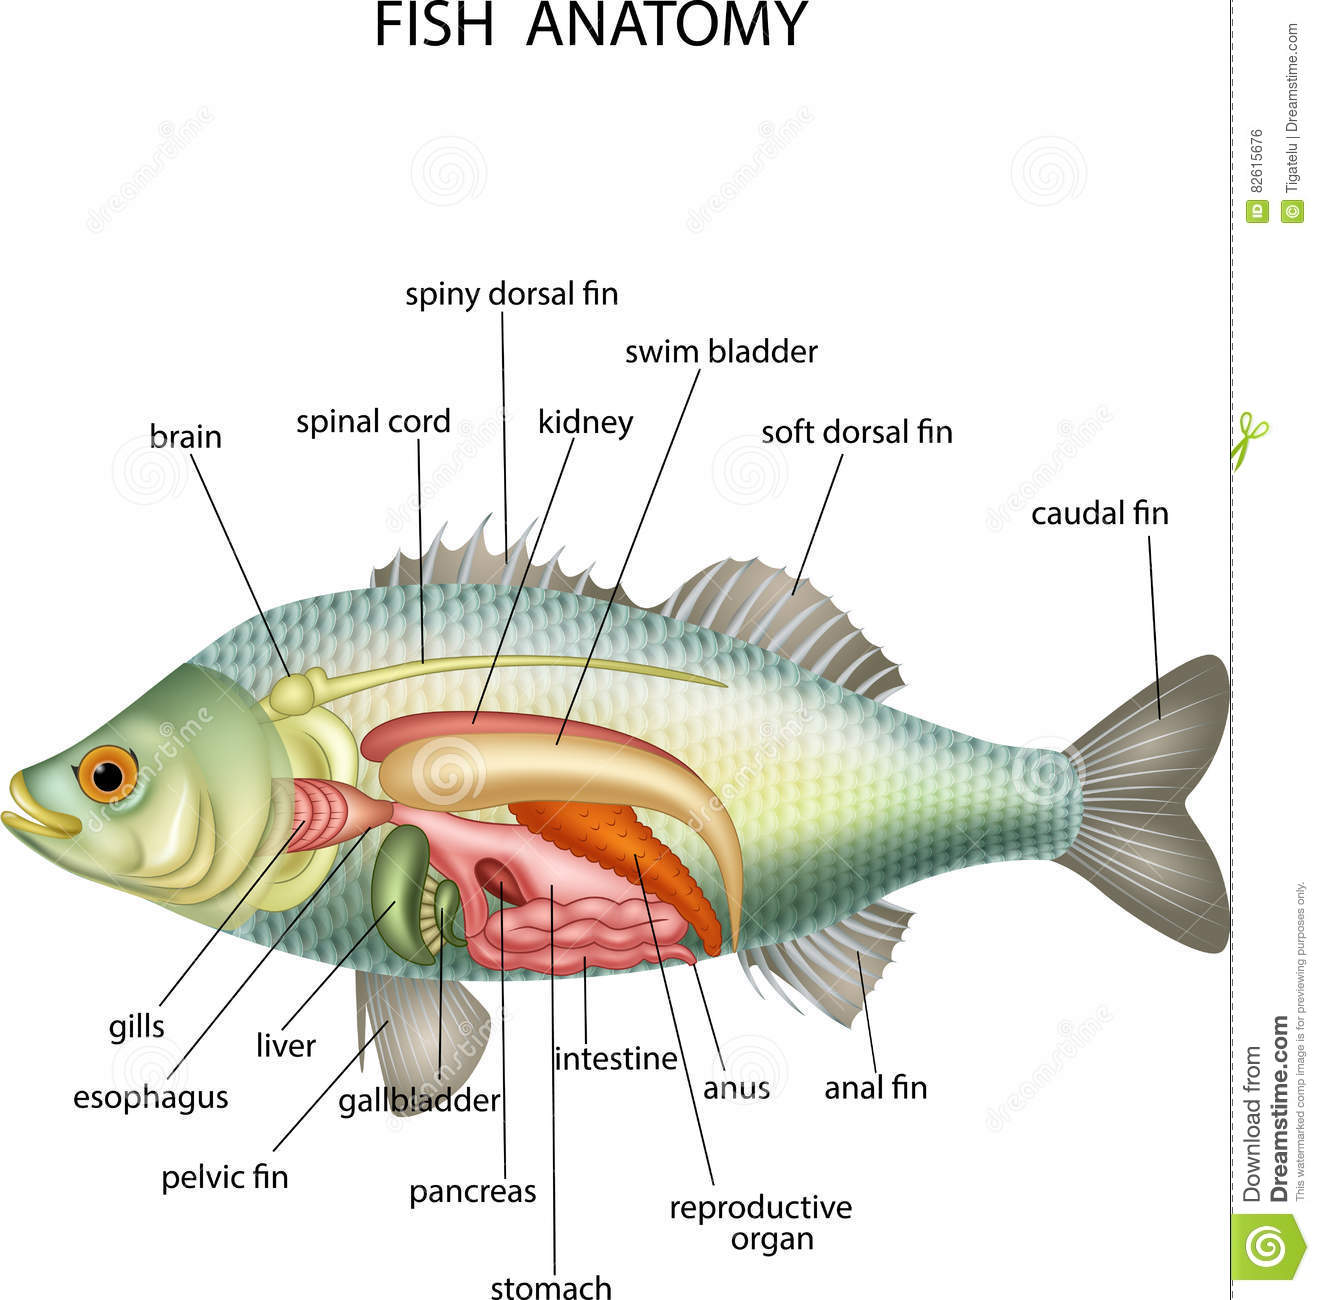 anatomy of fish stock vector illustration of diagram 82615676illustration of anatomy of fish